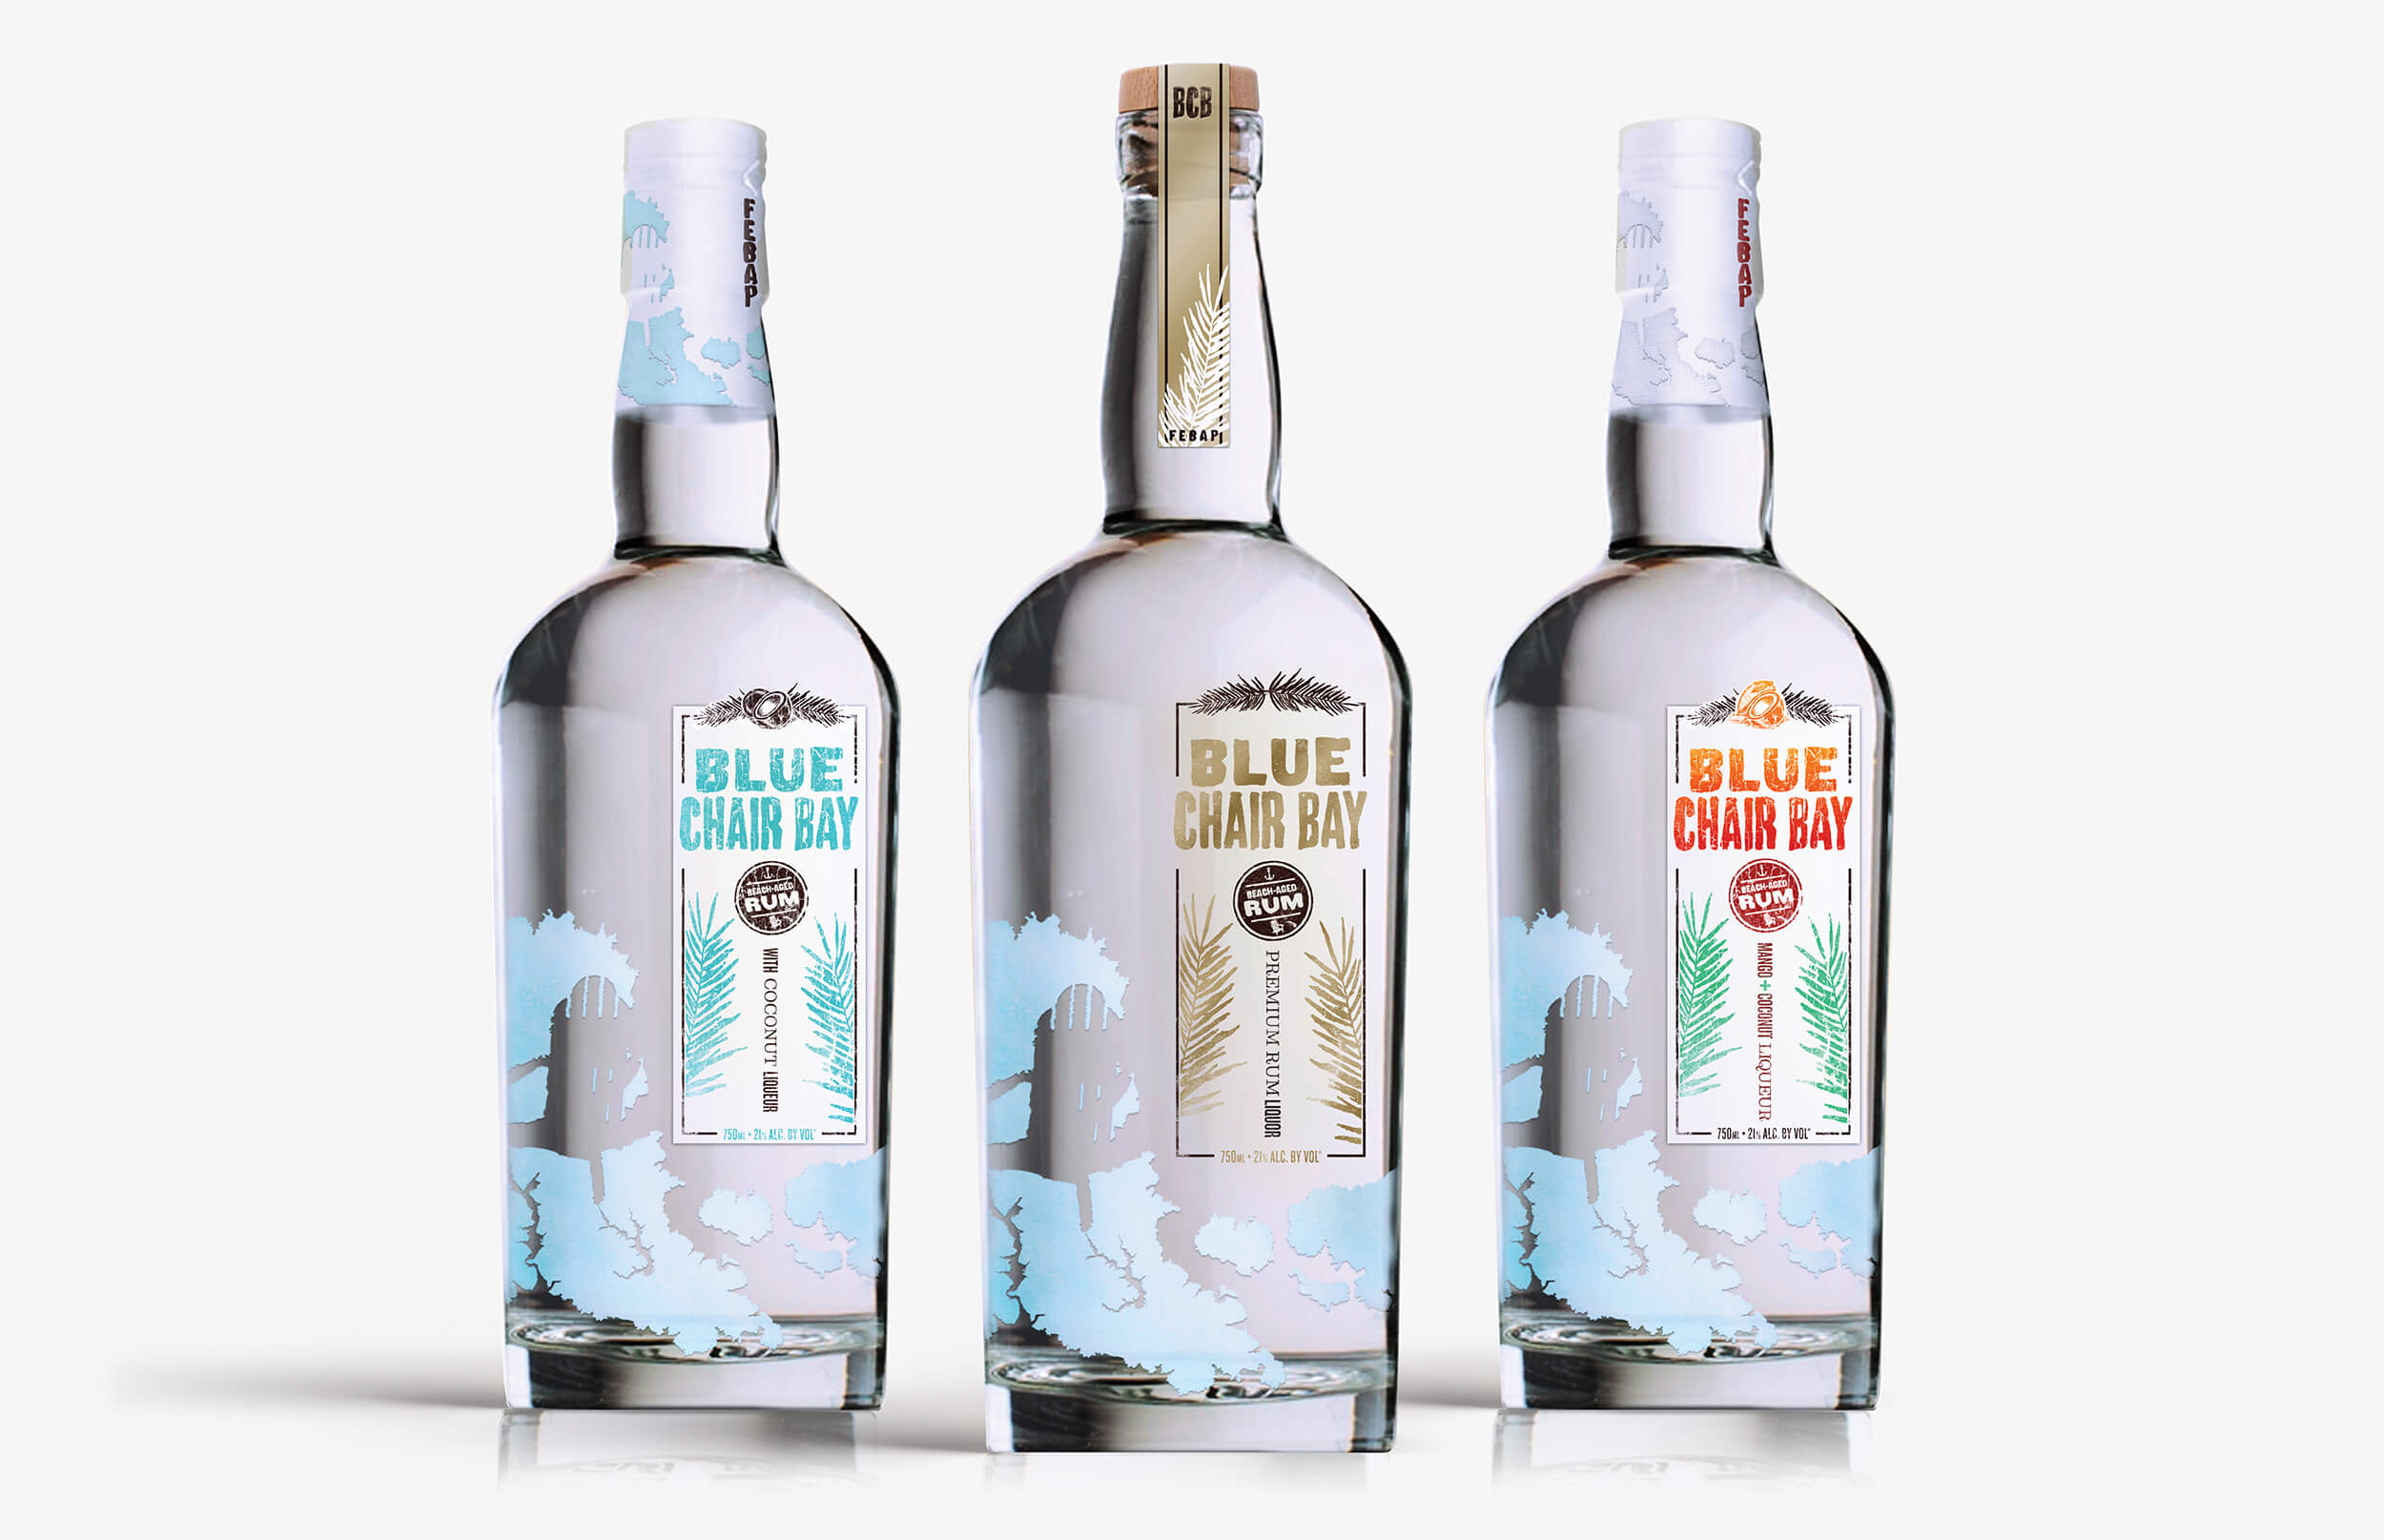 Blue Chair Bay Coconut Rum Where To Buy Blue Chair Bay Rum